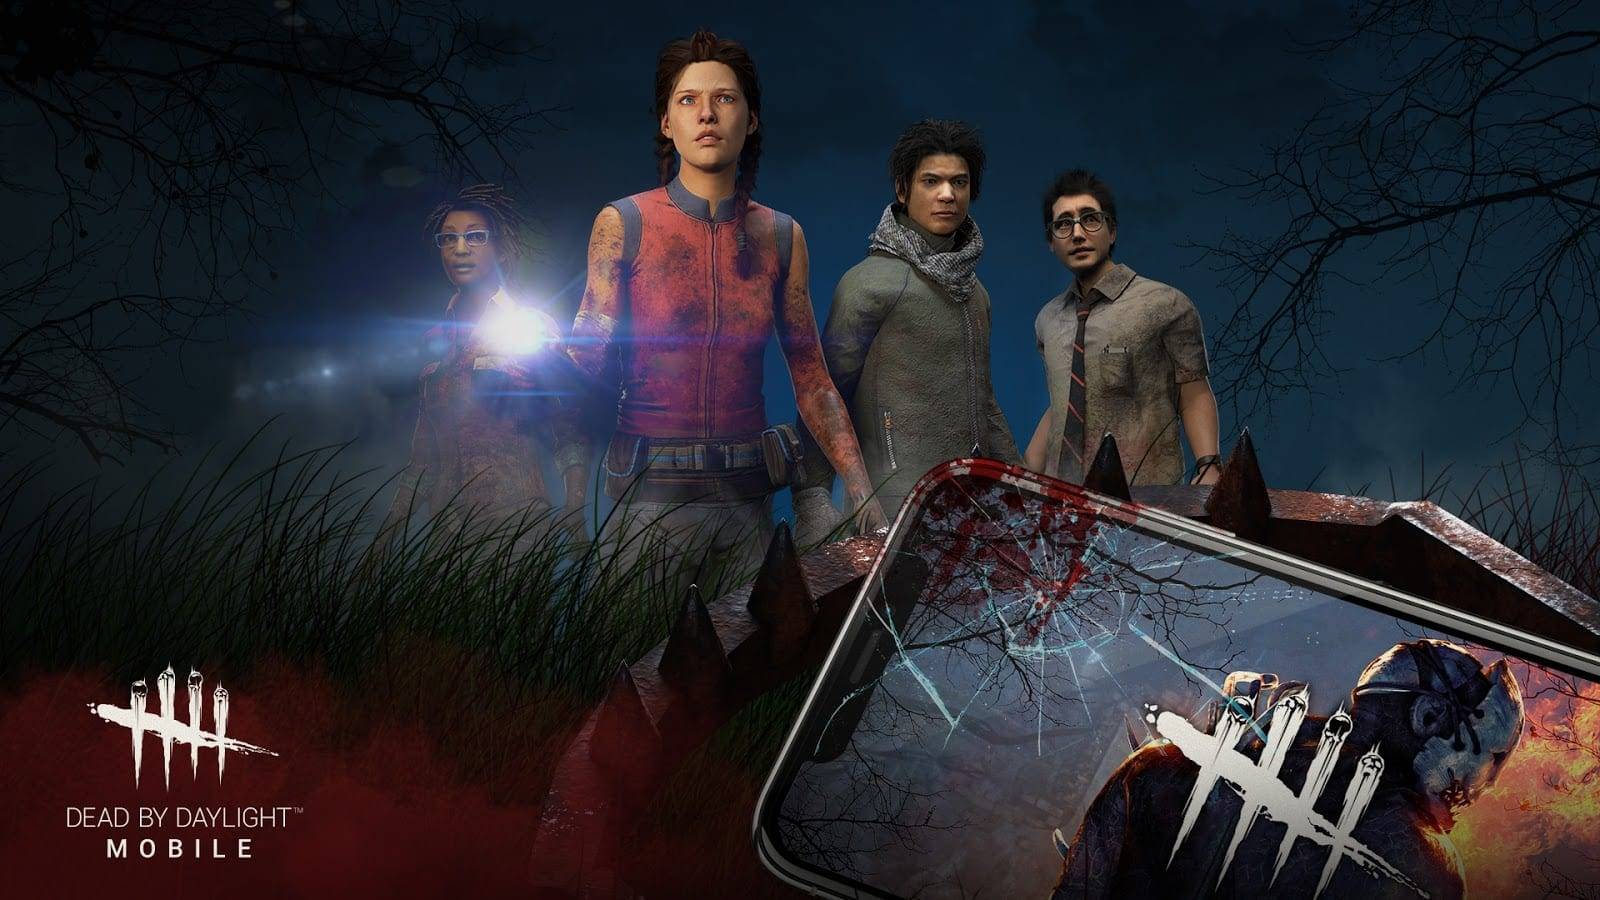 dead by daylight mobile, downloads, sales